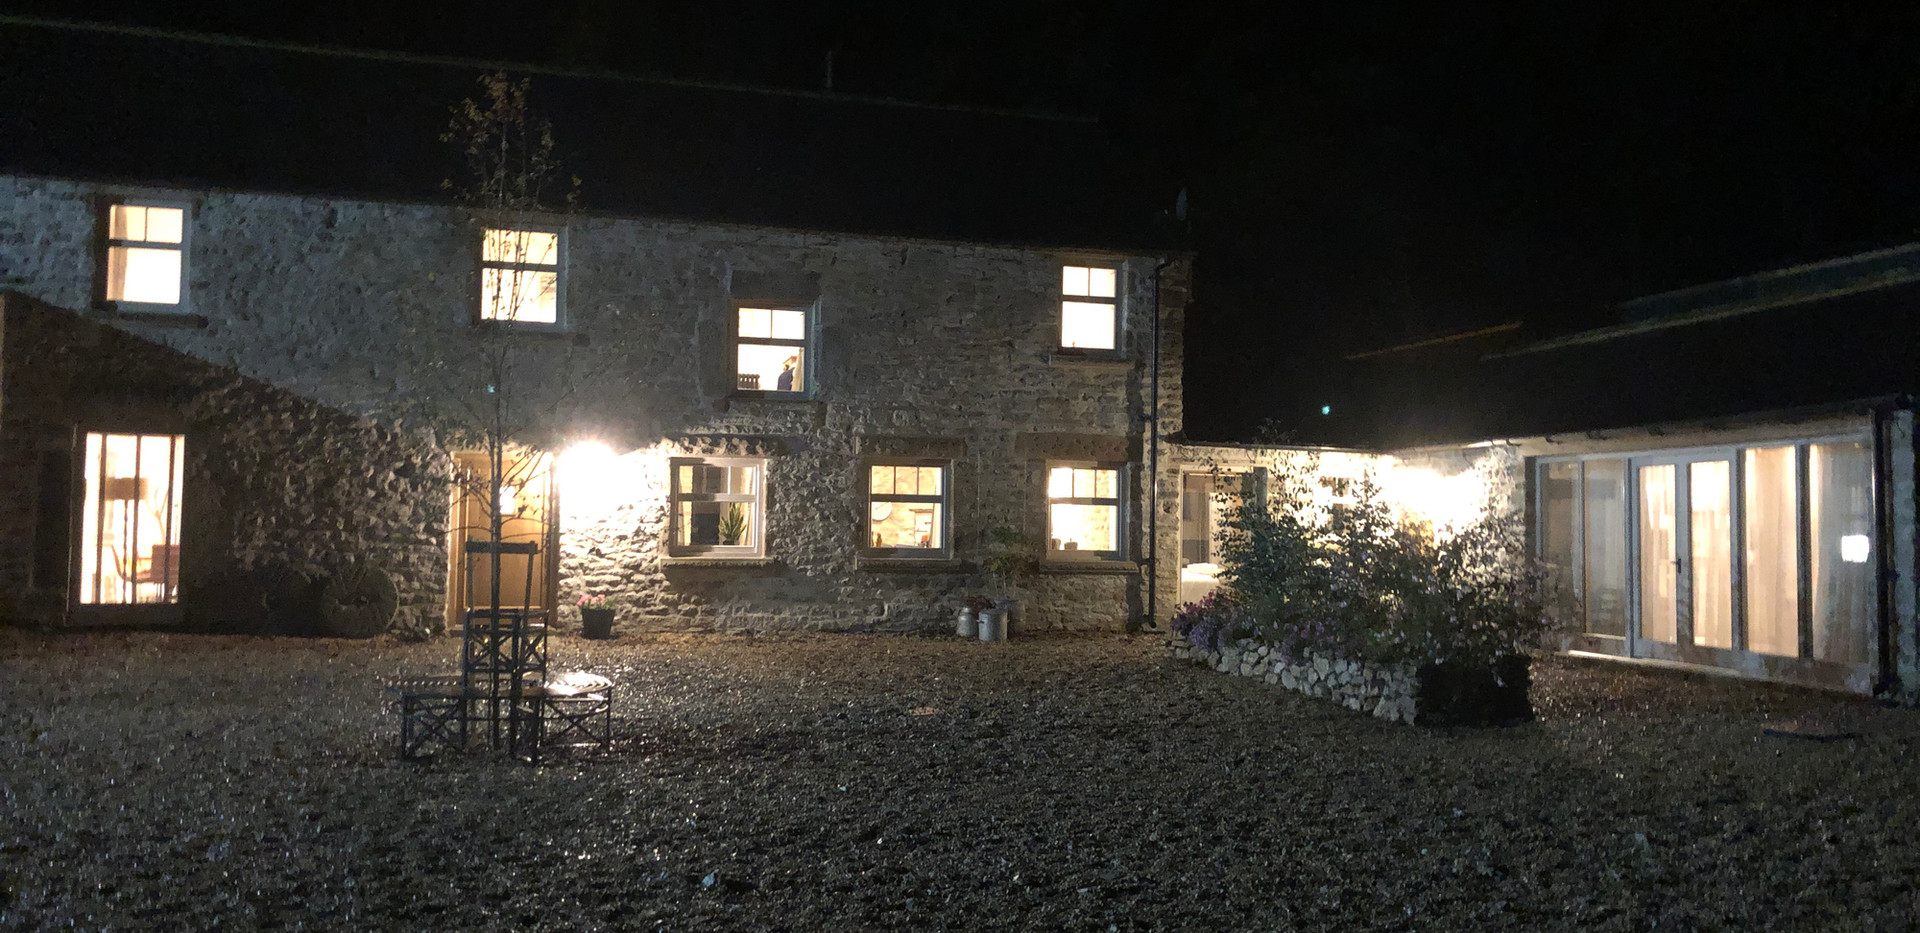 The Hayloft by Night